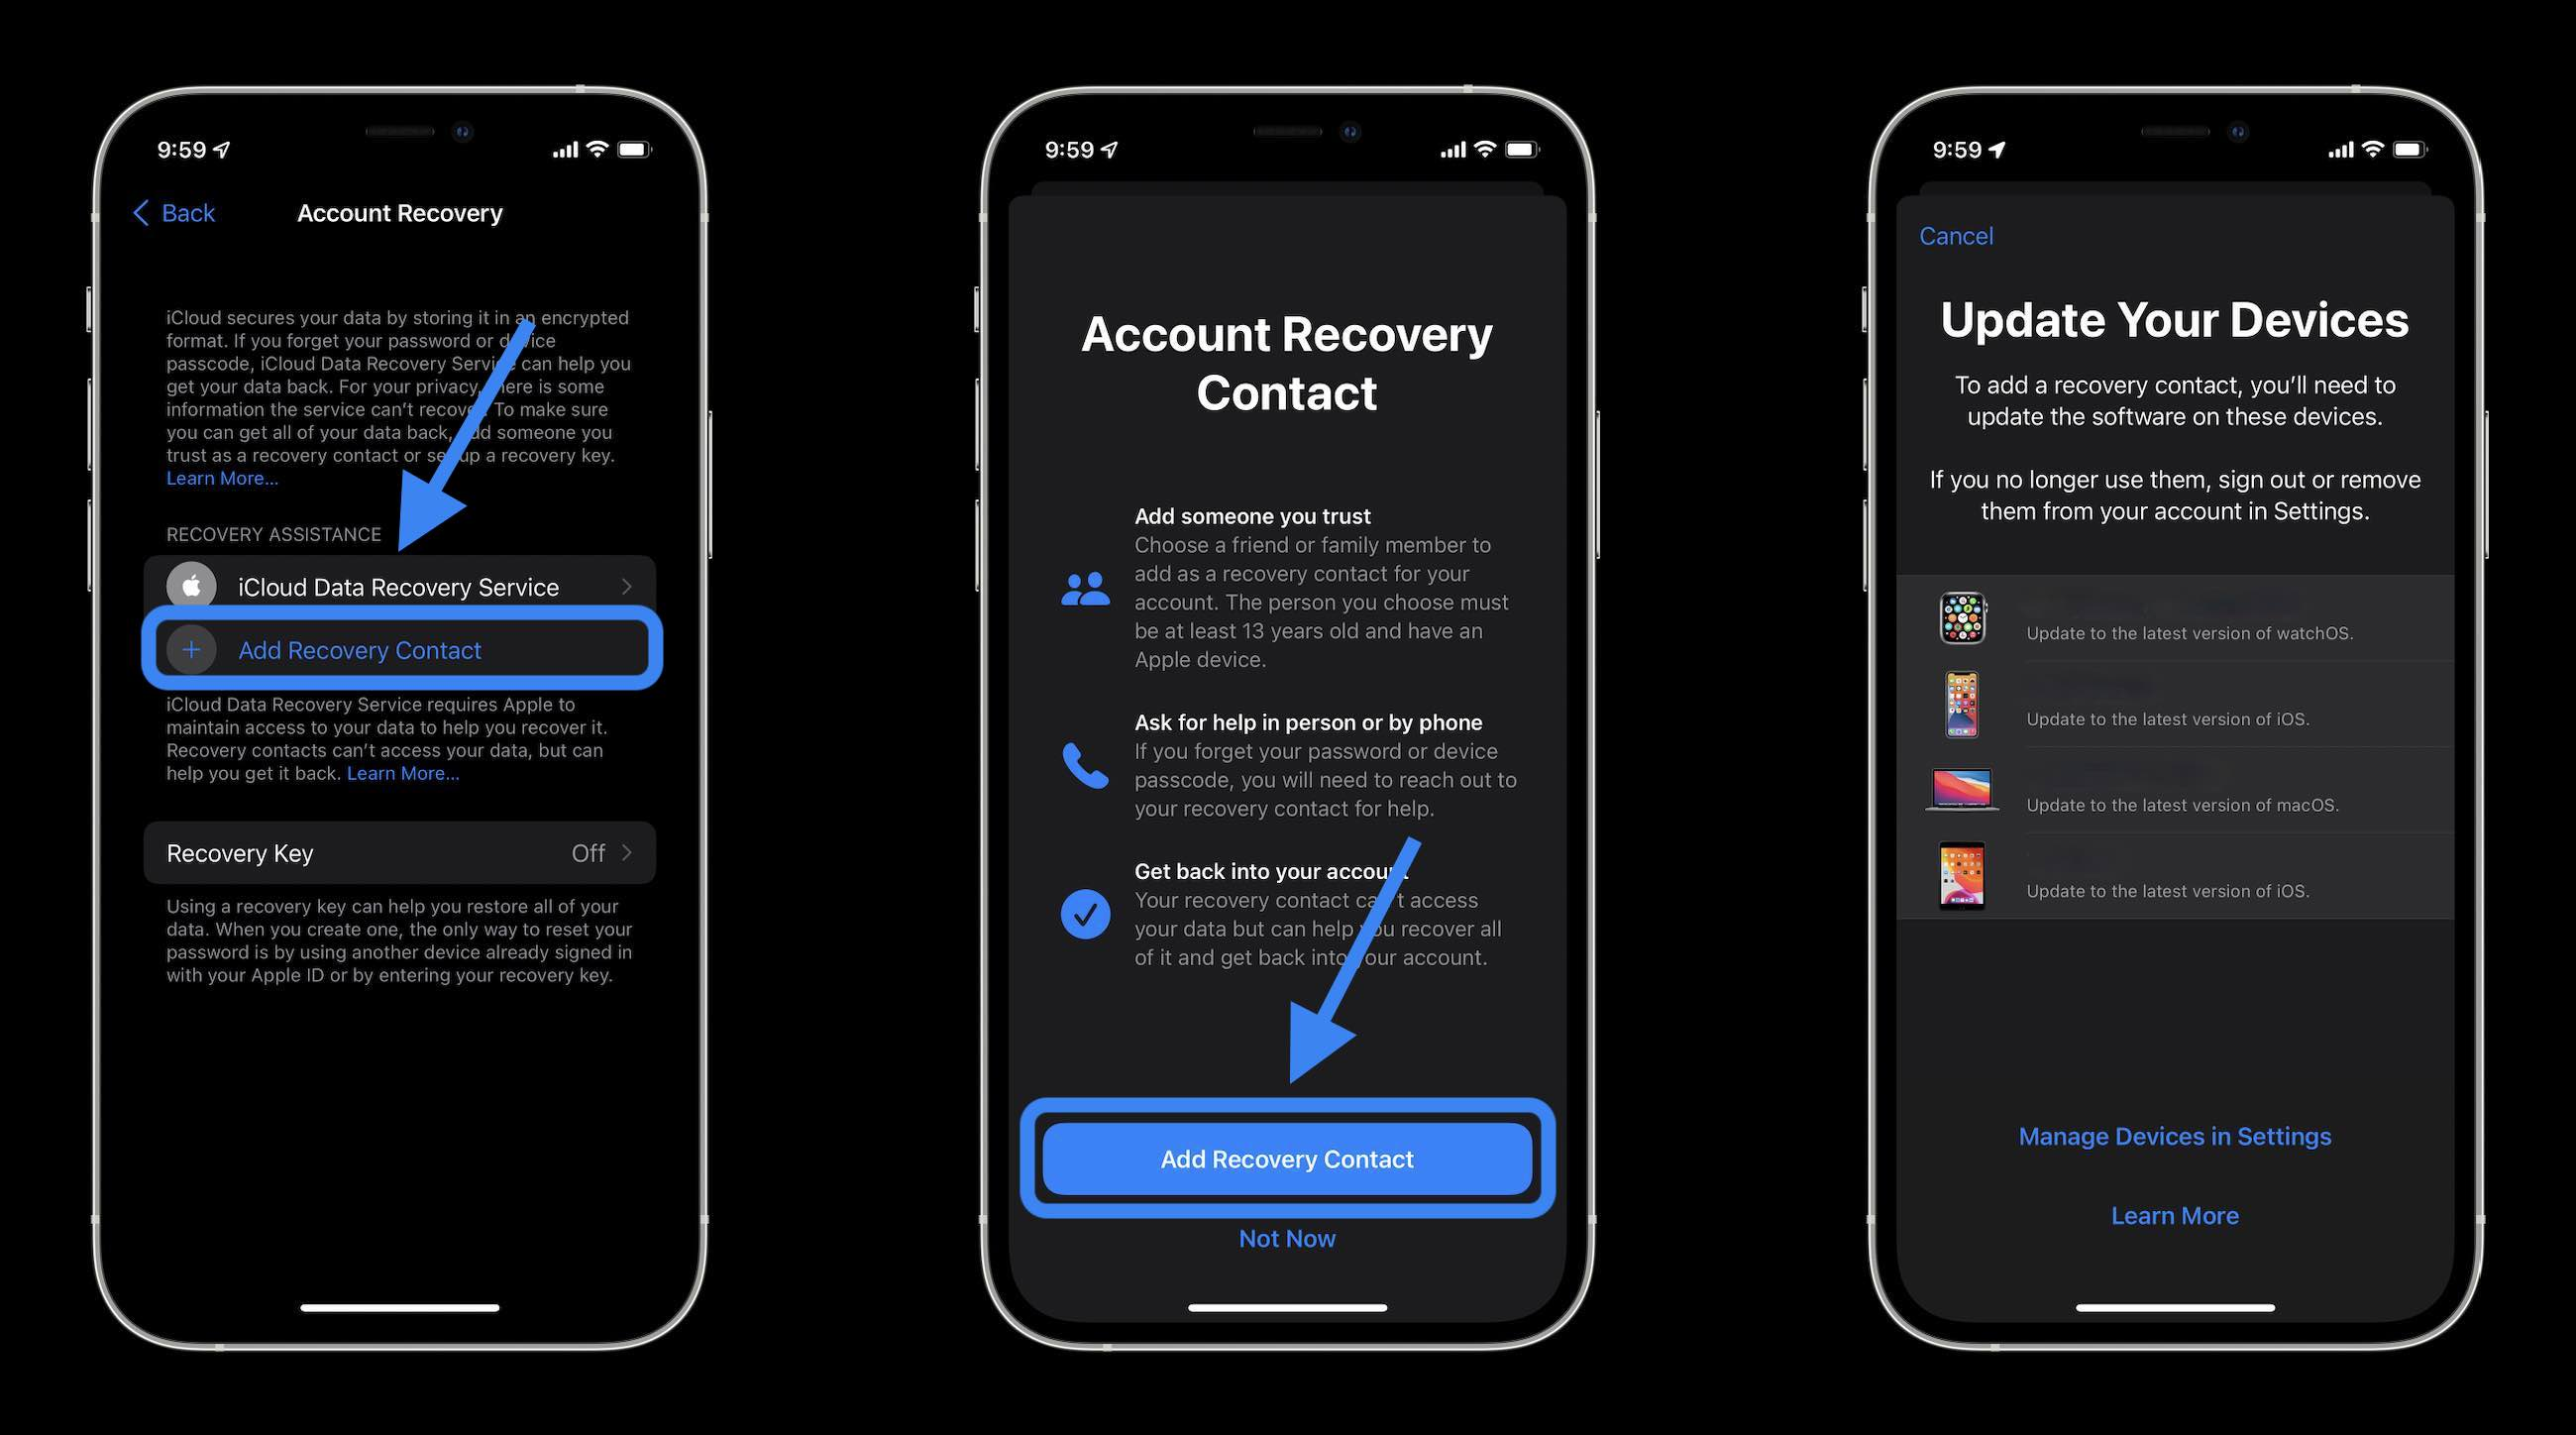 How to use iCloud Data Recovery walkthrough 2 - Tap Add Recovery Contact and follow the prompts